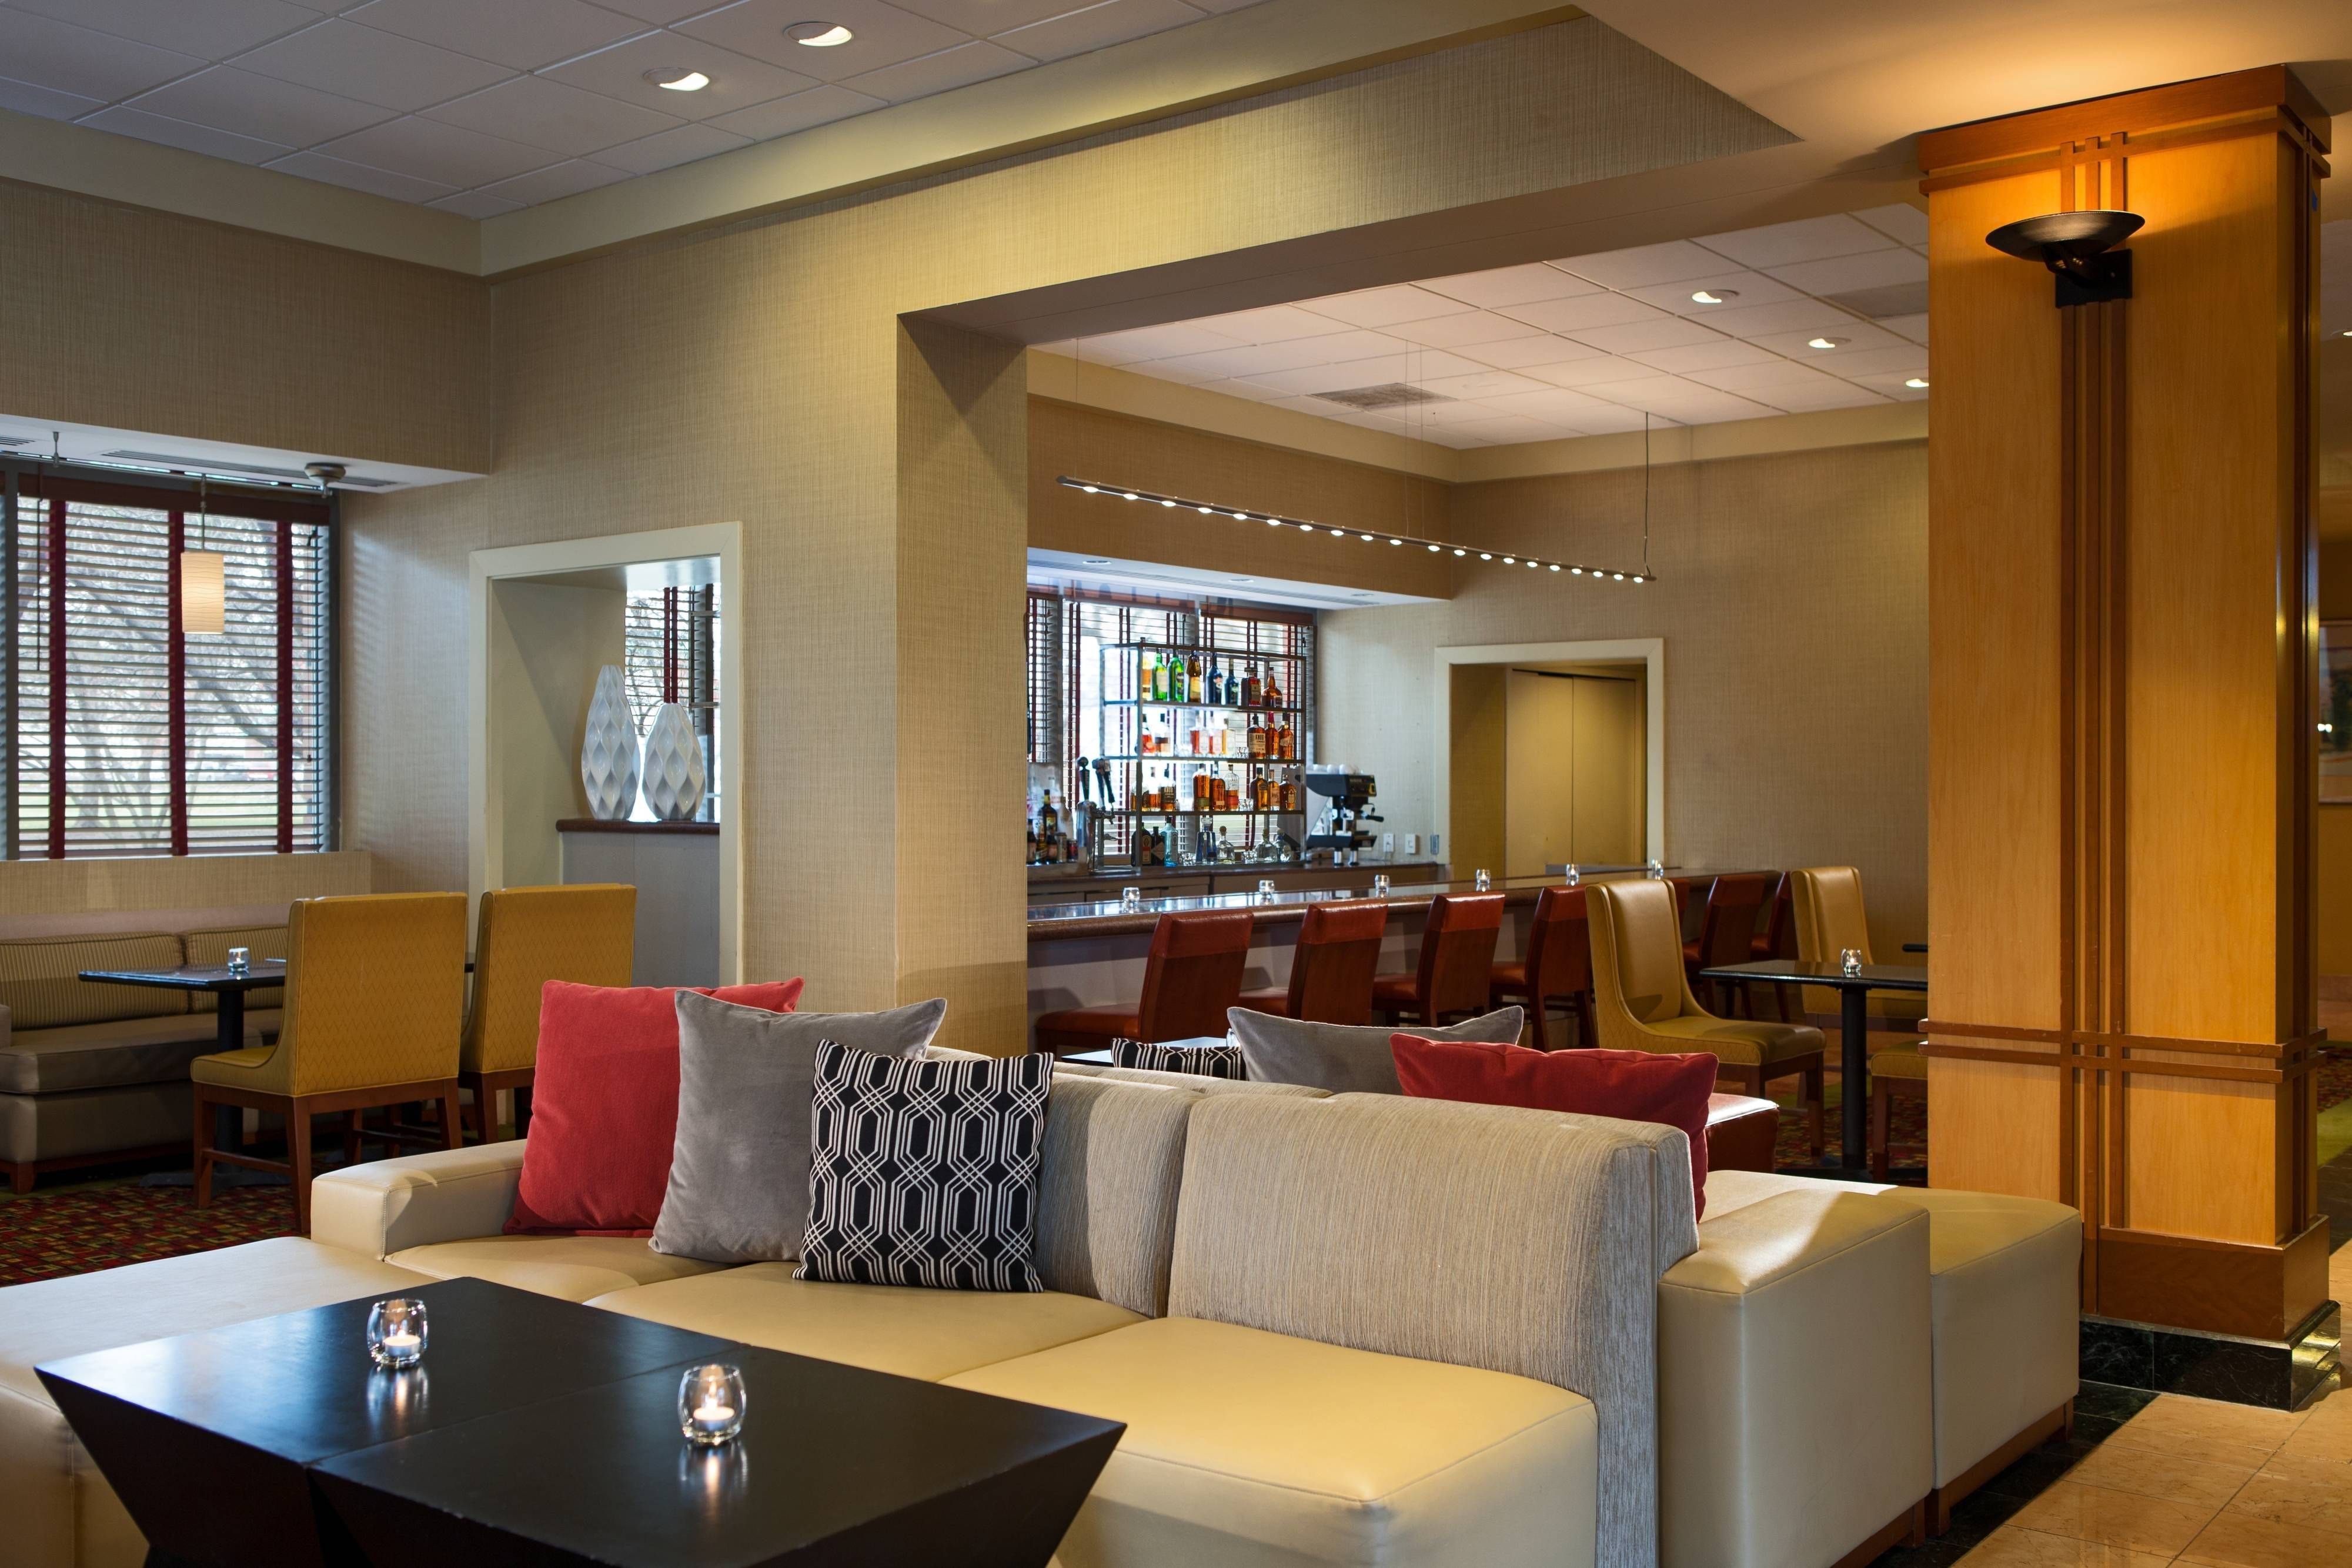 Chicago Marriott Suites Downers Grove Lobby Lounge Rooms